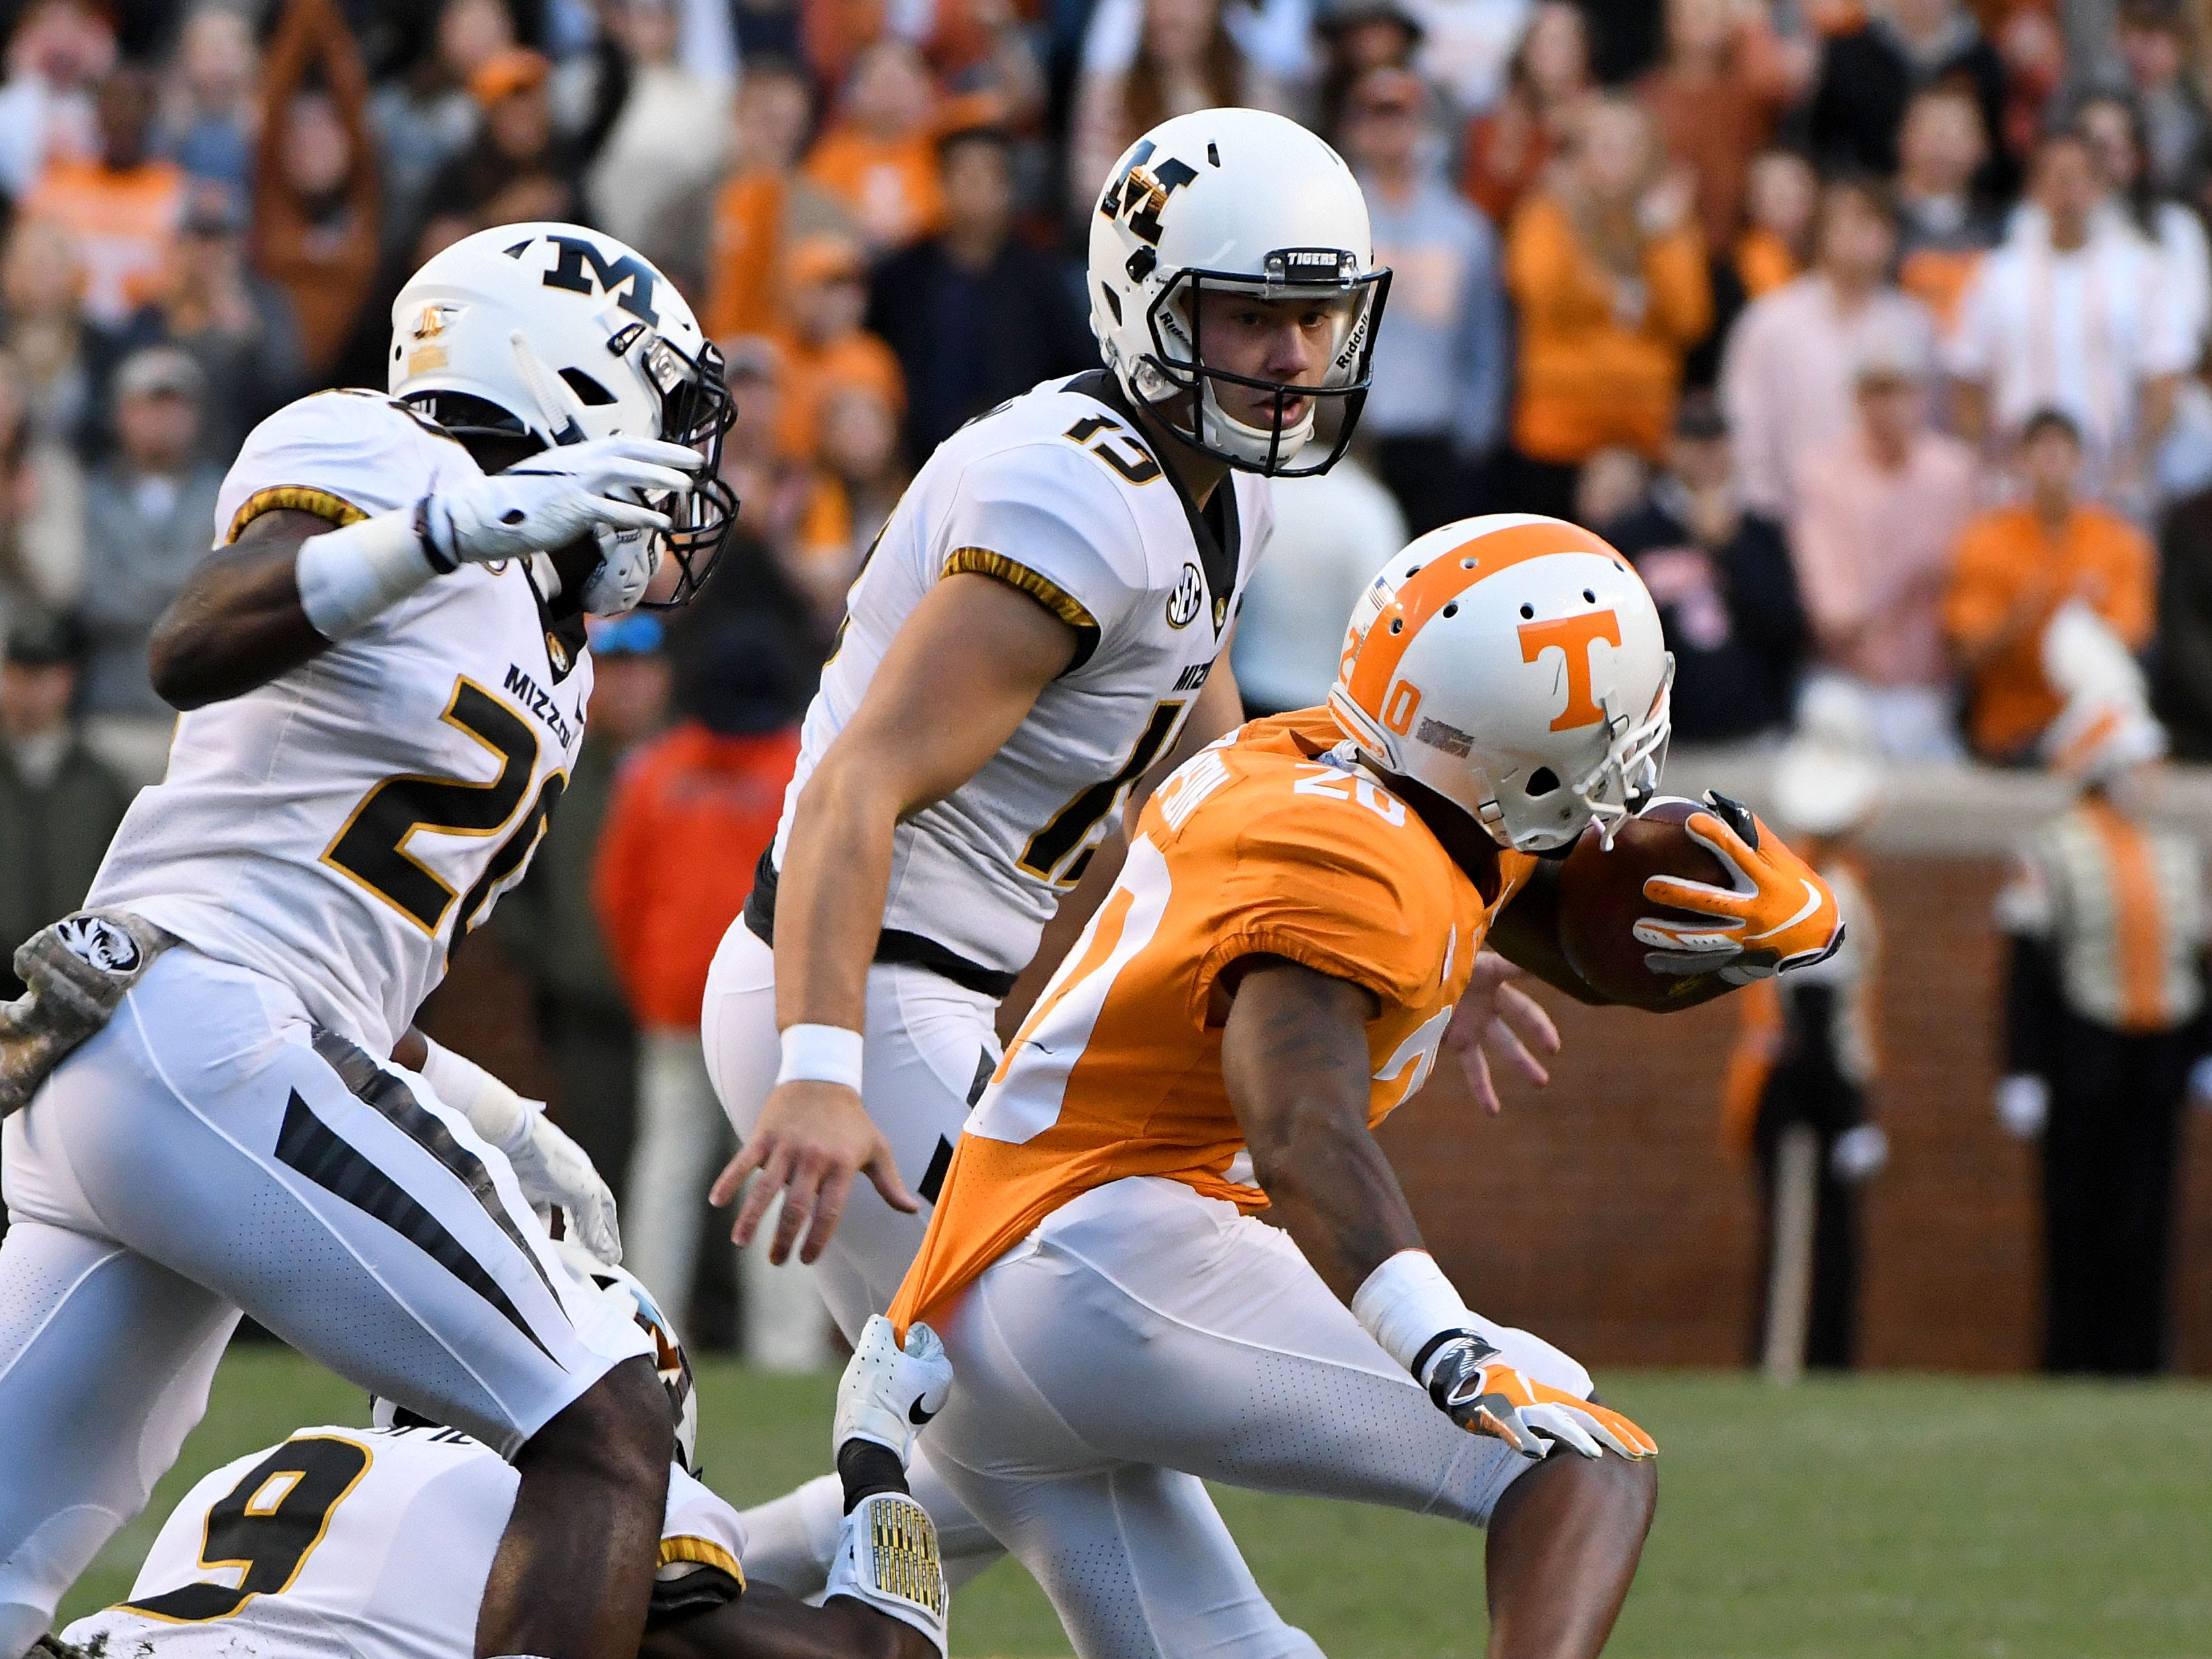 Tennessee defensive back Bryce Thompson (20) during first half action against Missouri Saturday, Nov. 17, 2018 at Neyland Stadium in Knoxville, Tenn.